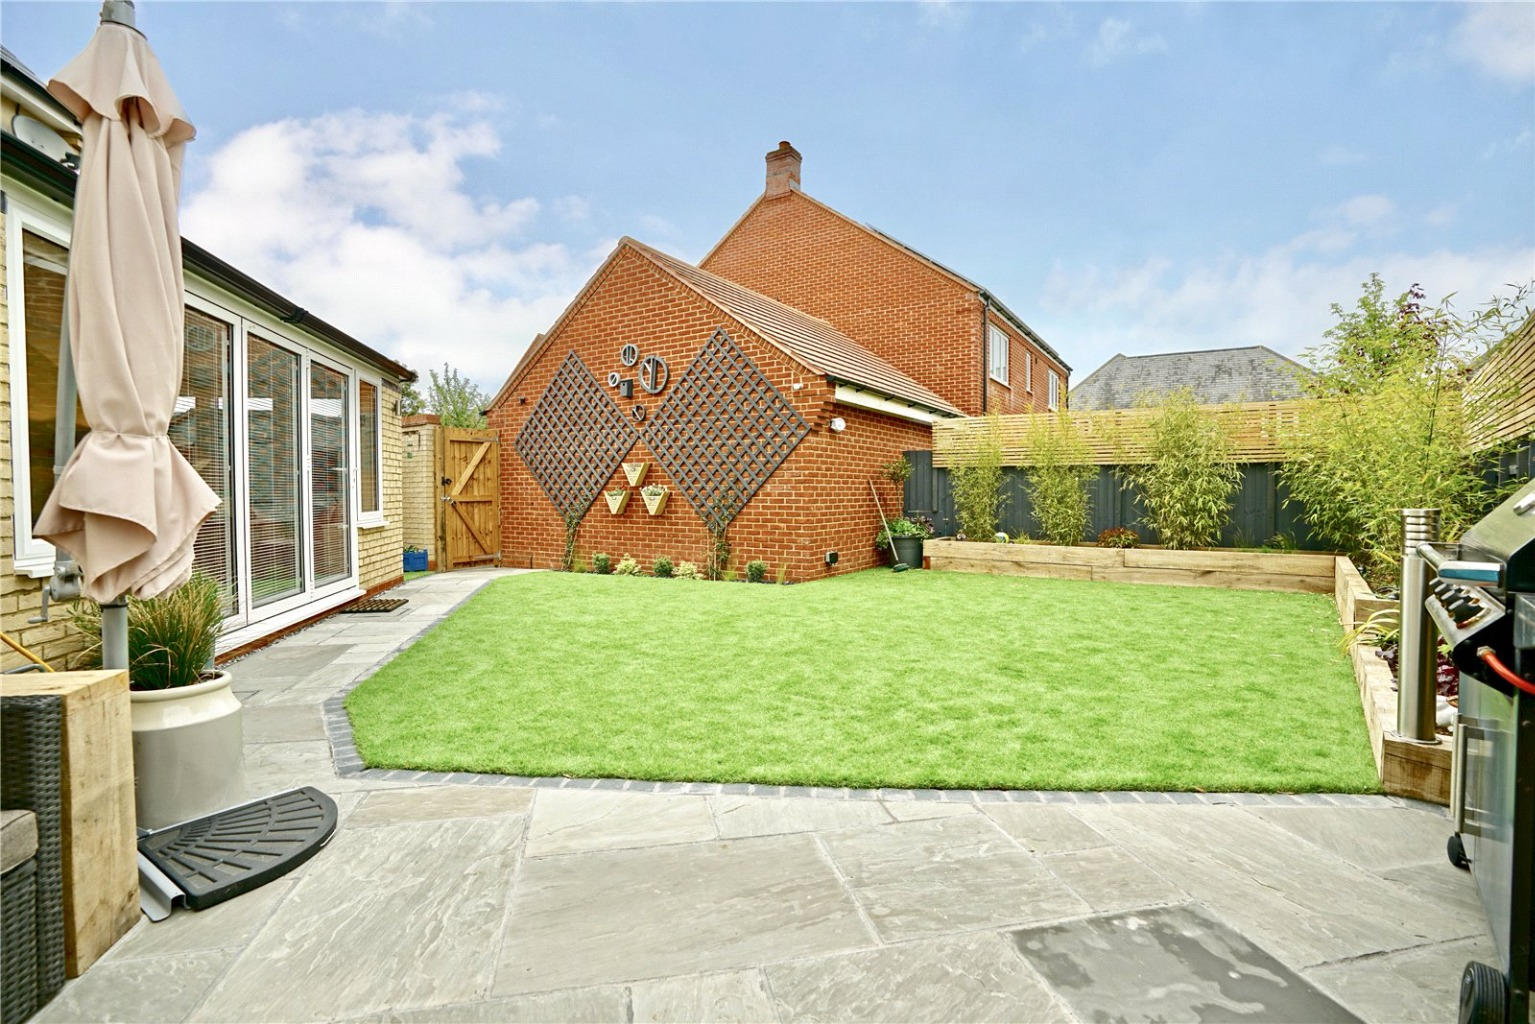 4 bed detached house for sale in Lannesbury Crescent, St. Neots  - Property Image 16